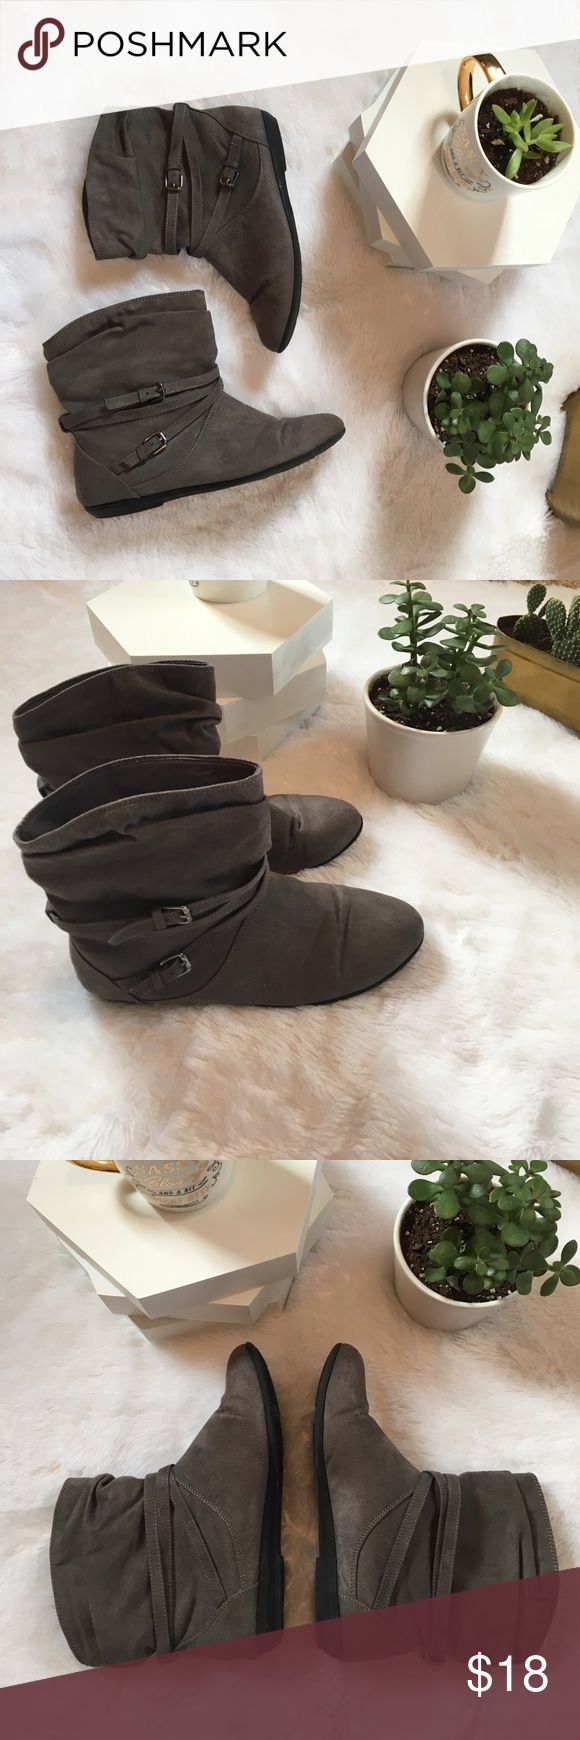 Grey Suede Booties, Short Ankle Boots, Buckle Adorable grey booties! 2 side buckles and accent straps on each boot! Slip on. Flexible fabric around the ankles. Hard toe for durability. Size 7 Women's. Only worn twice! Great condition. Lower East Side Shoes Ankle Boots & Booties